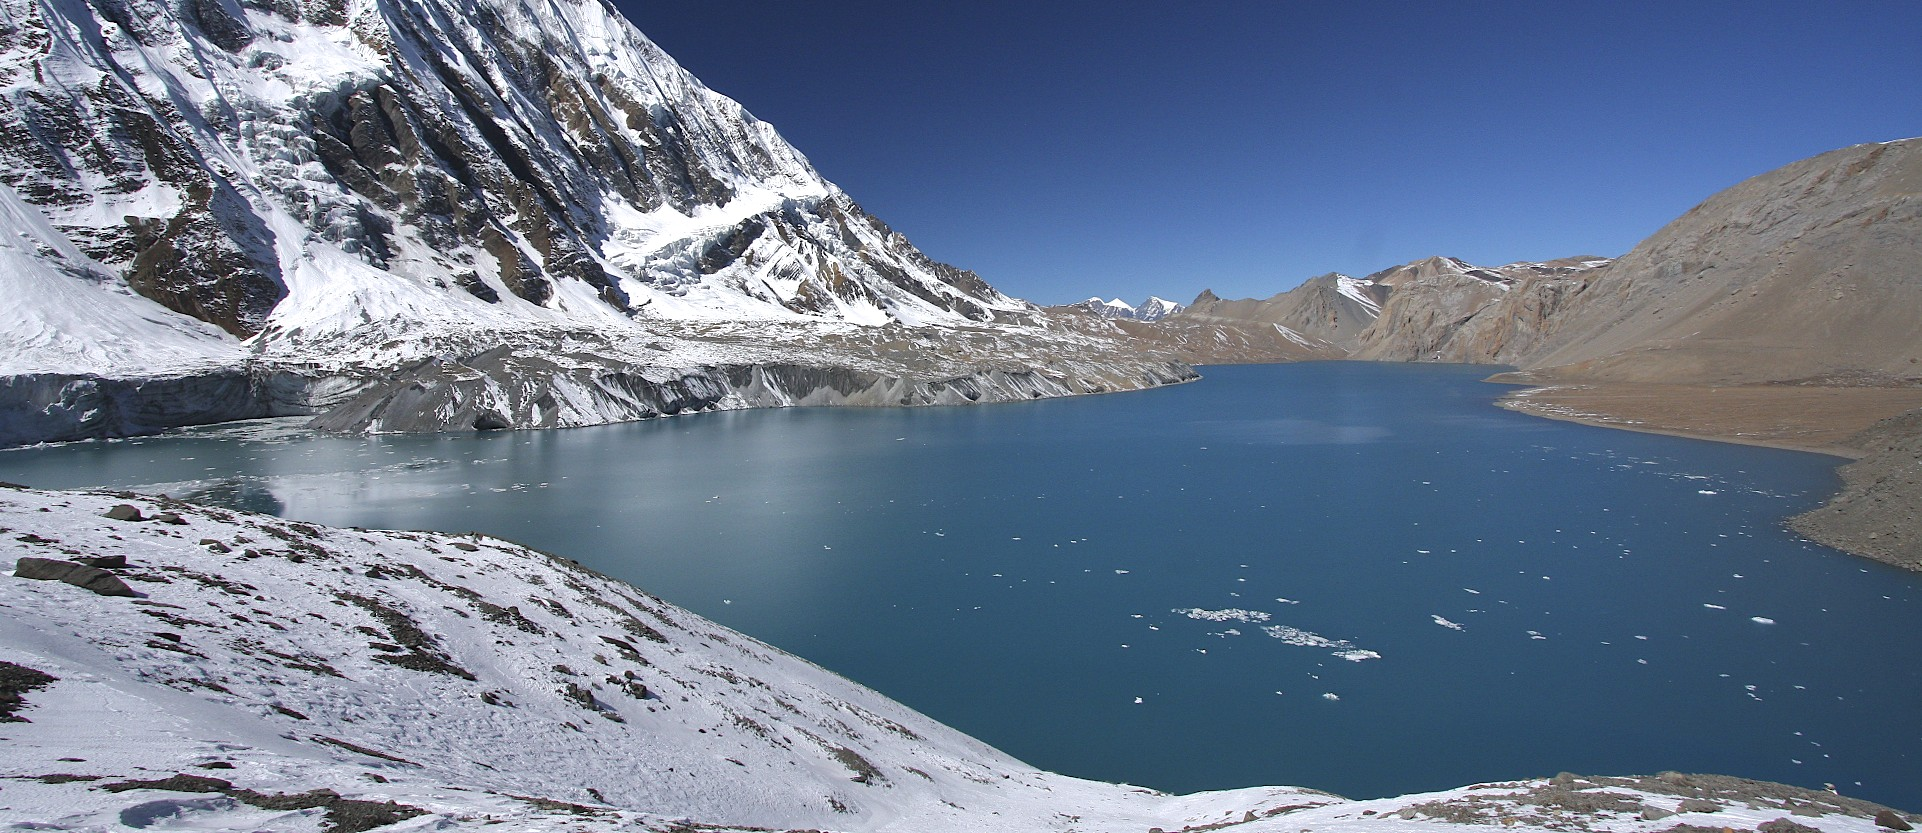 Tilicho Lake - the highest lake in the world at 4,919m.